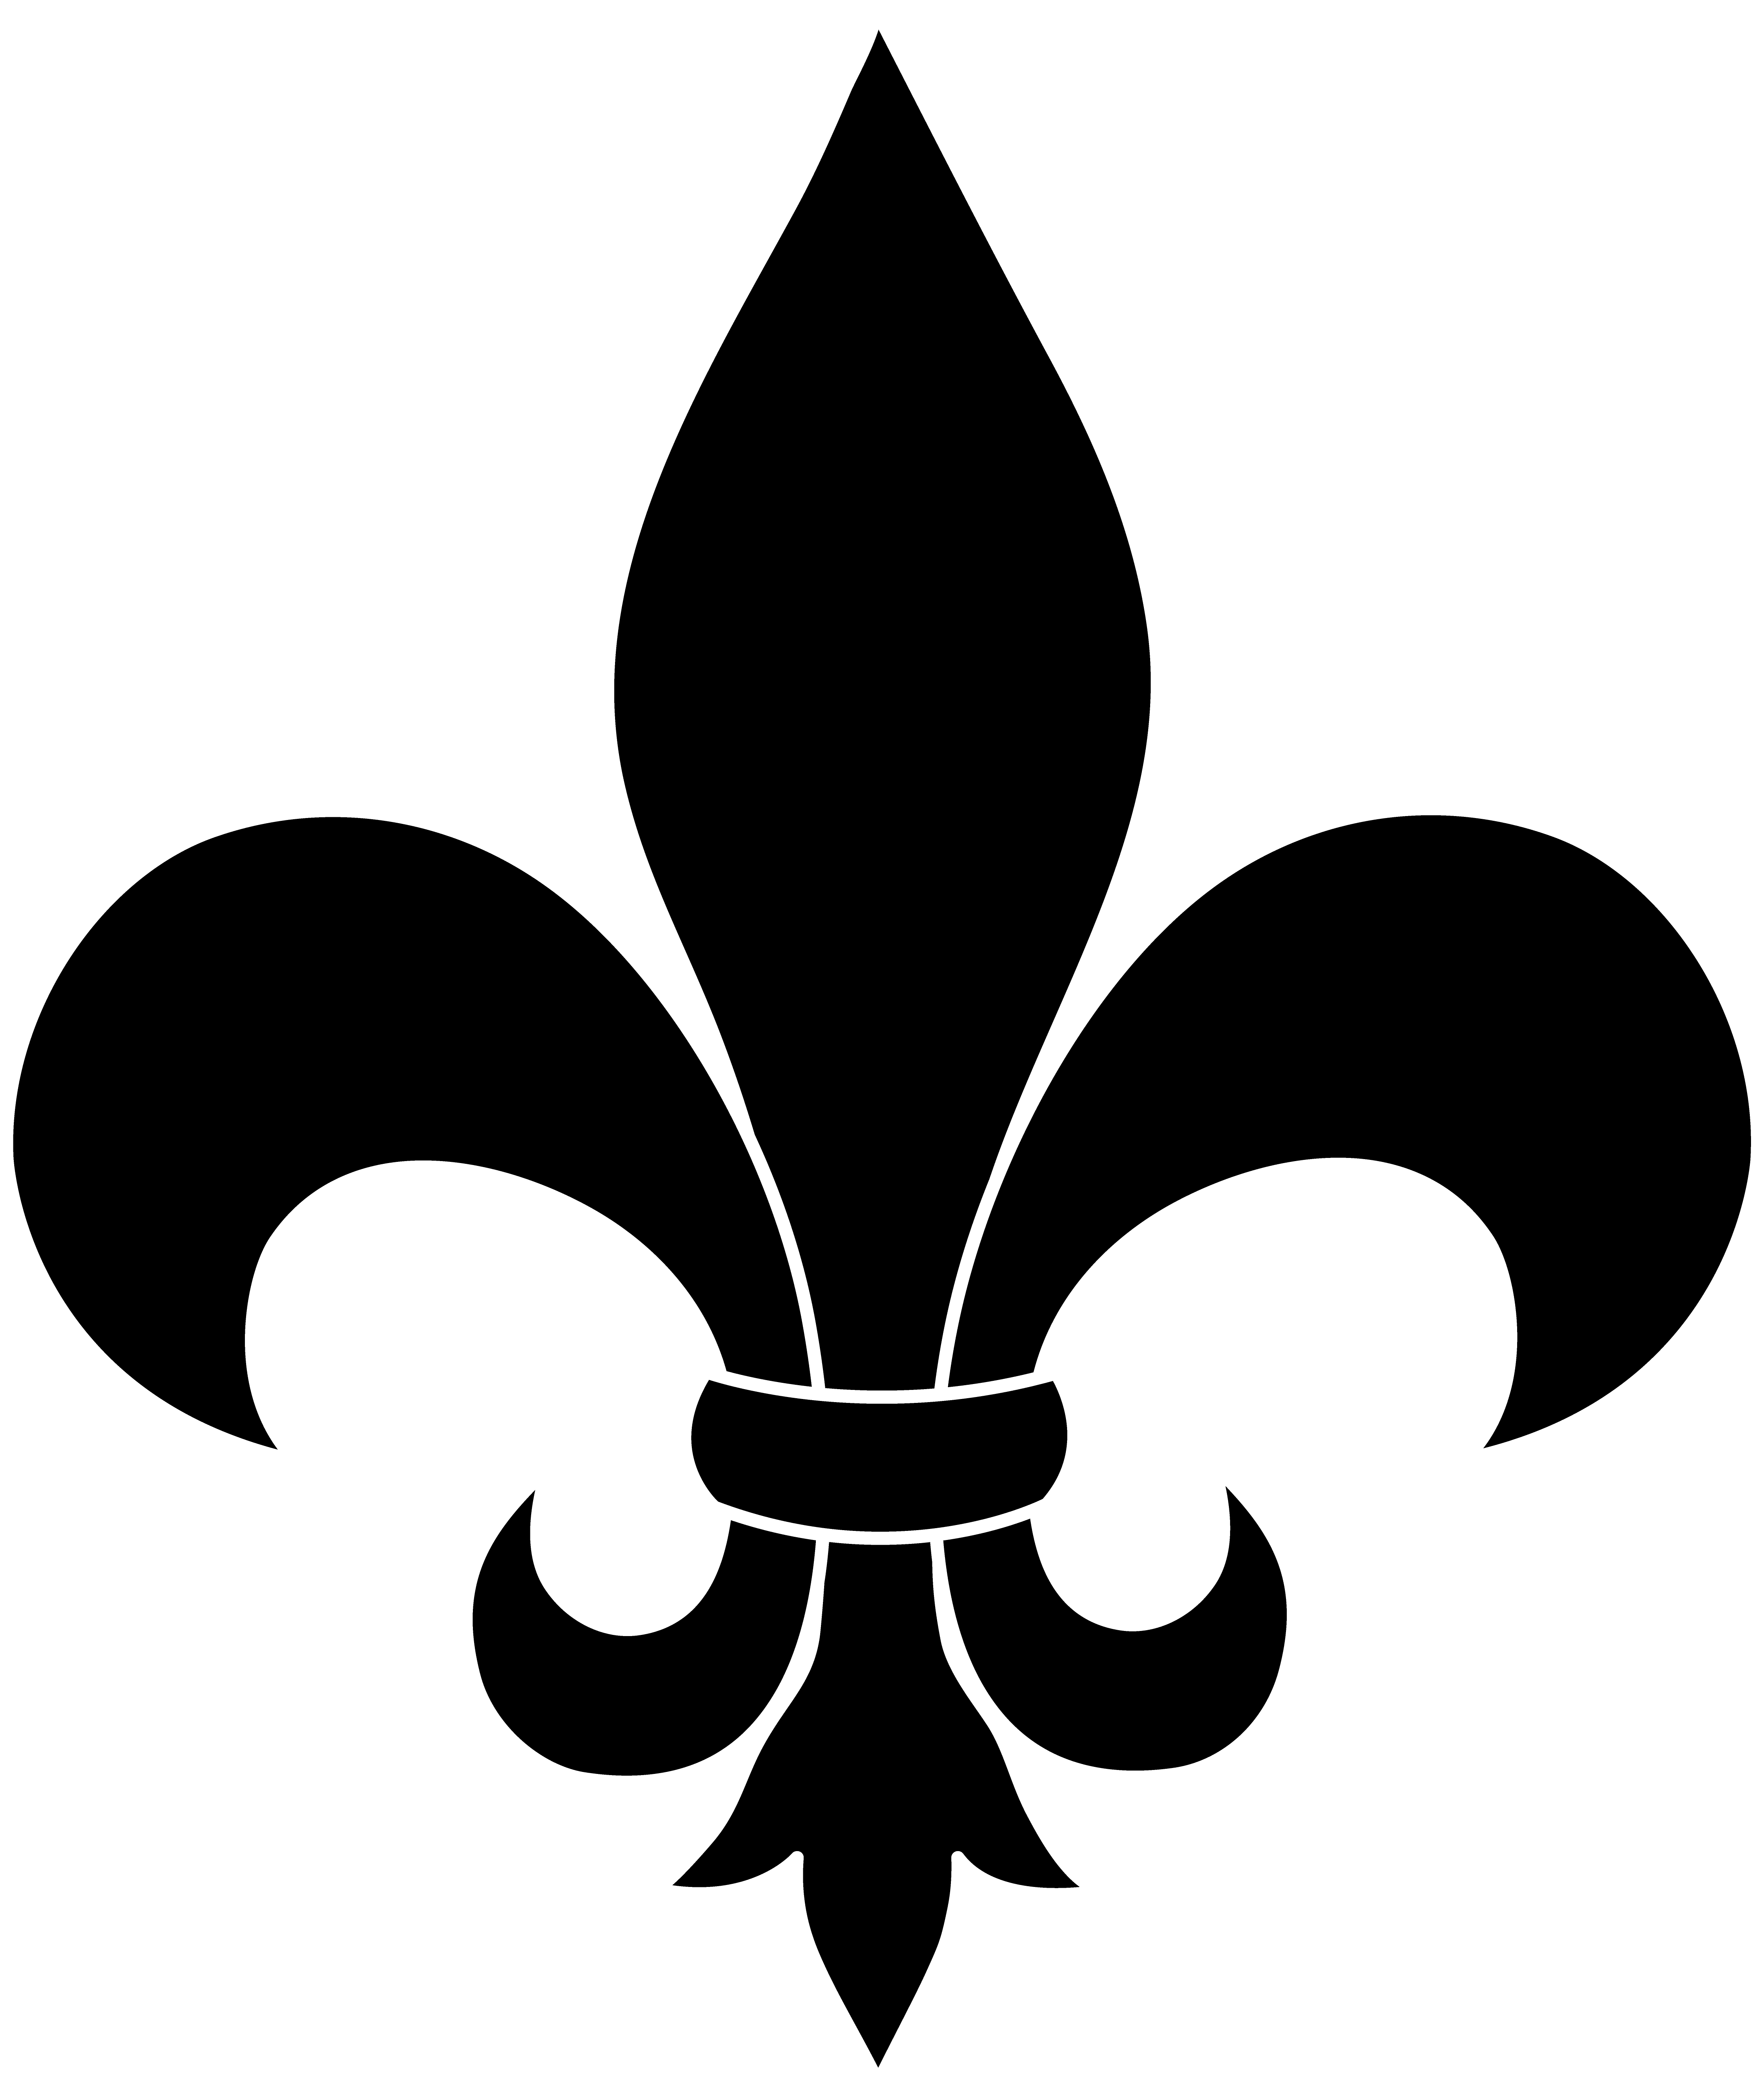 Fleur-de-lis clipart #3, Download drawings